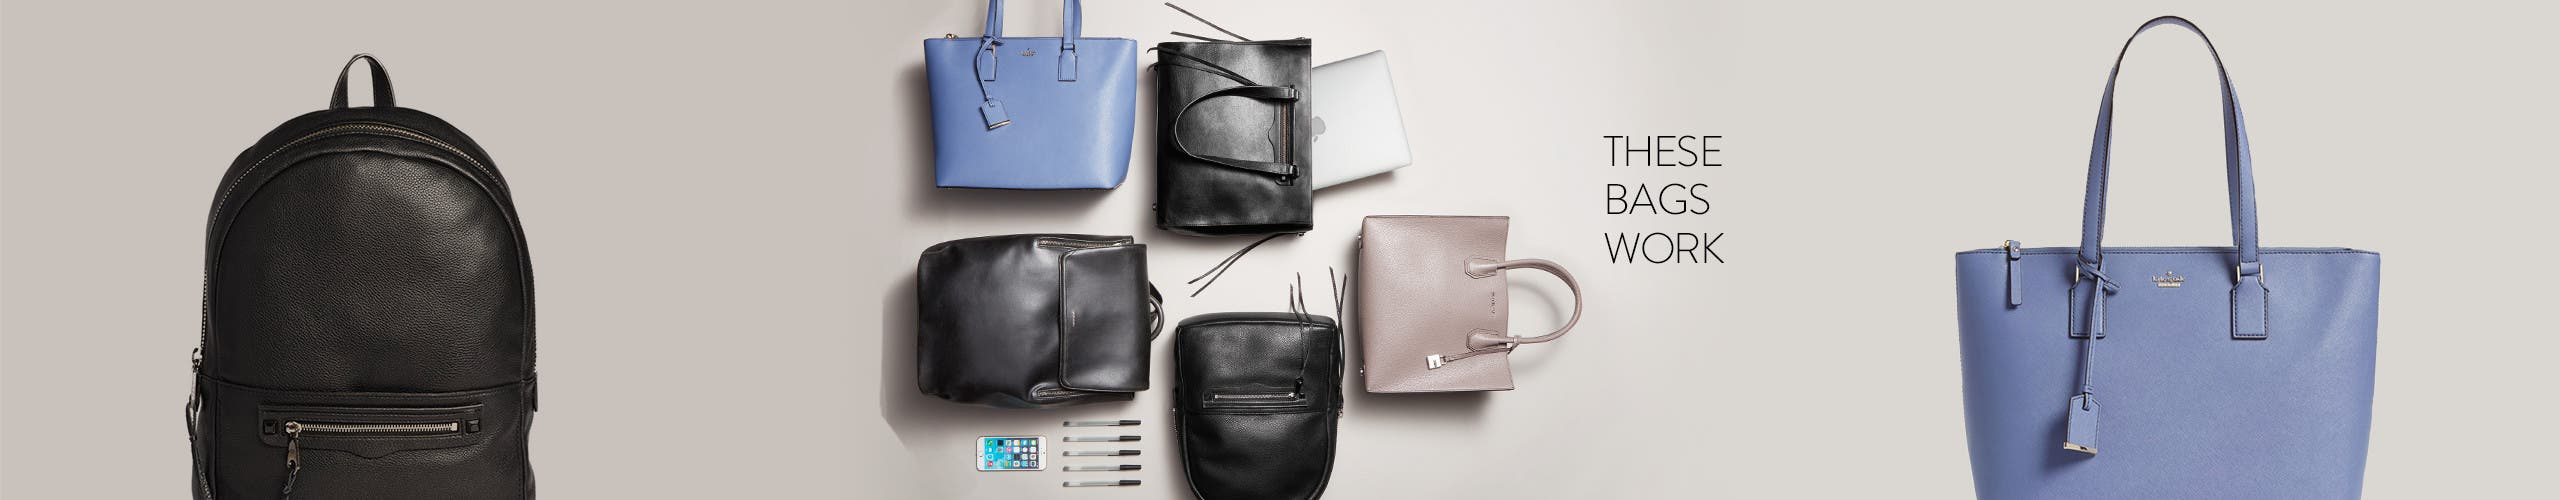 These bags work: backpacks and totes.